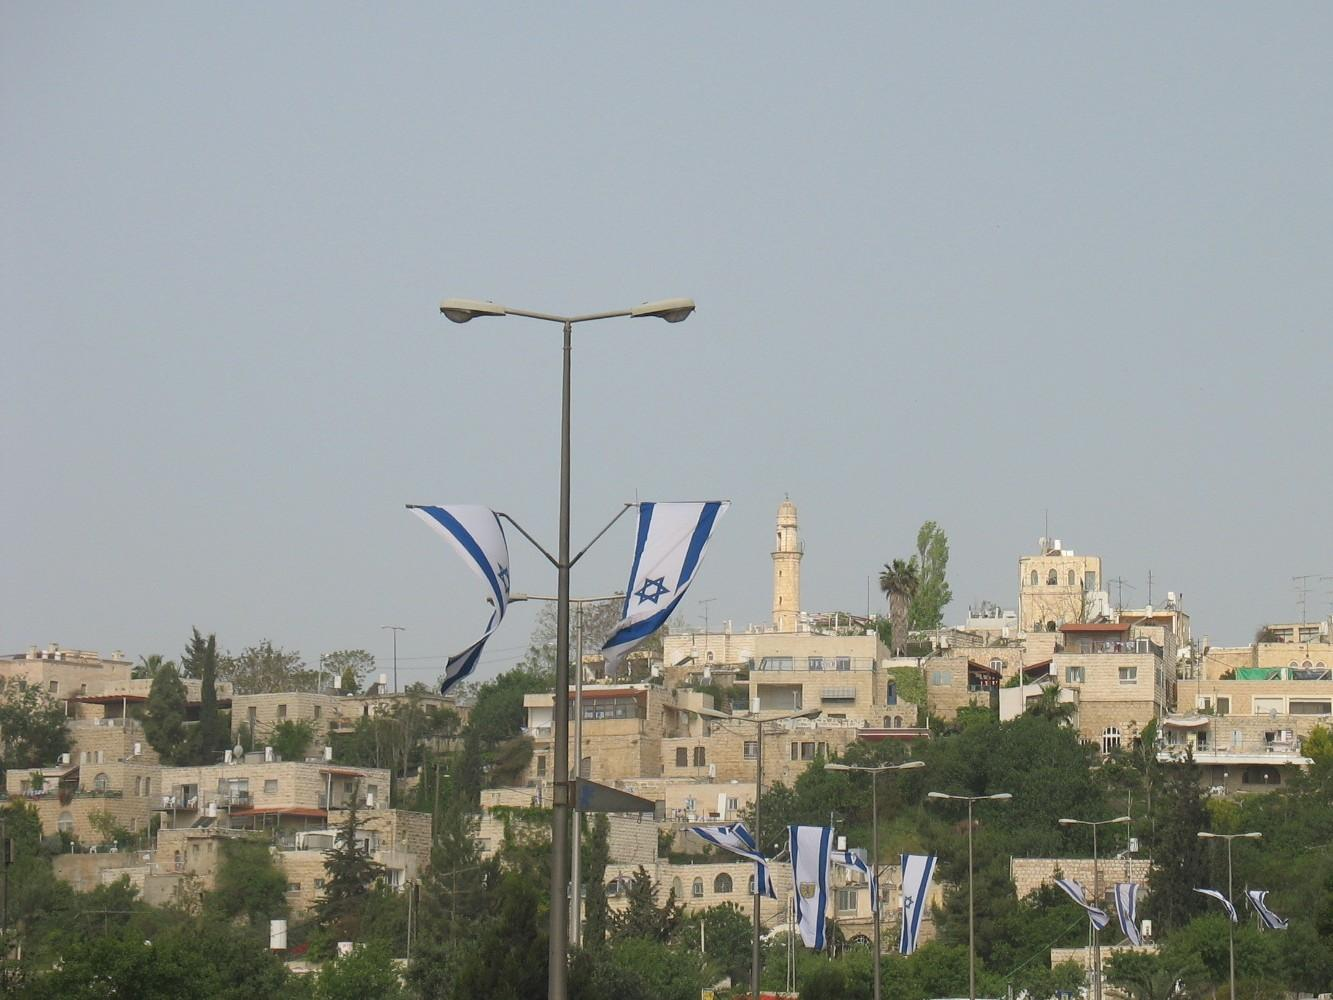 al-Maliha - المالحه : Geneal view for the usupred house, the Omari mosque can be seen in the background